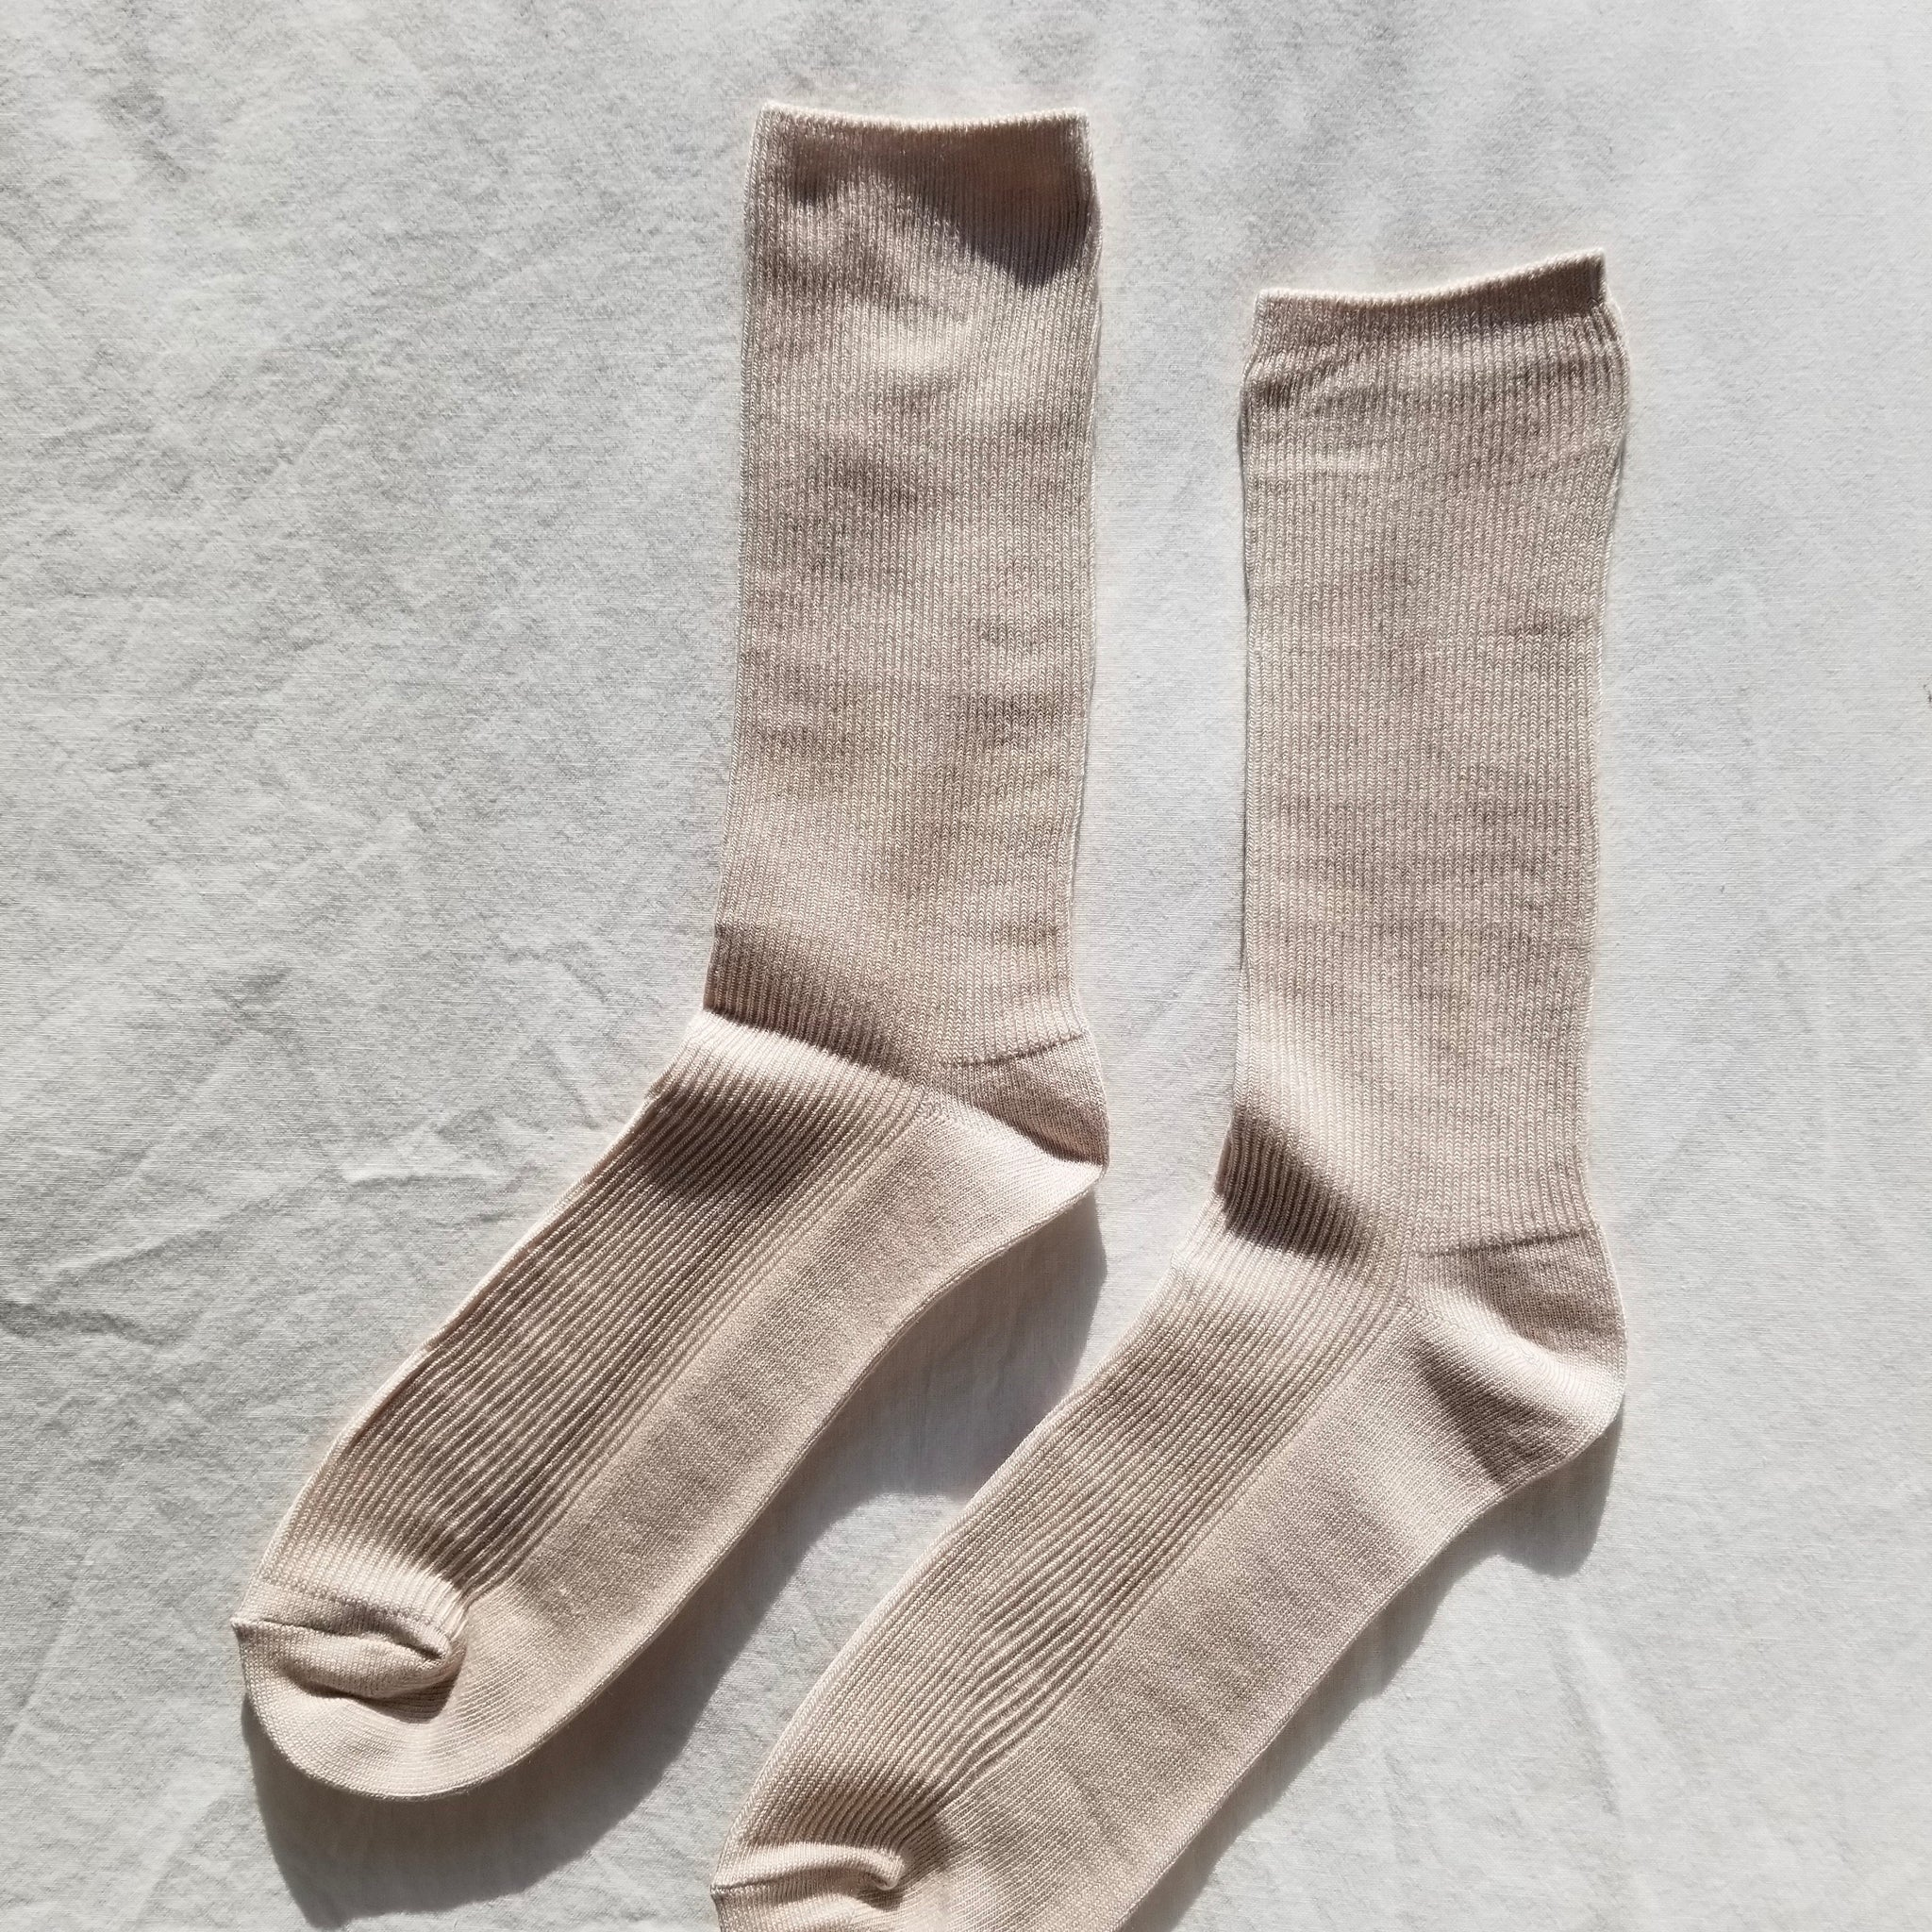 Le Bon Shoppe Trouser Socks in Eggnog